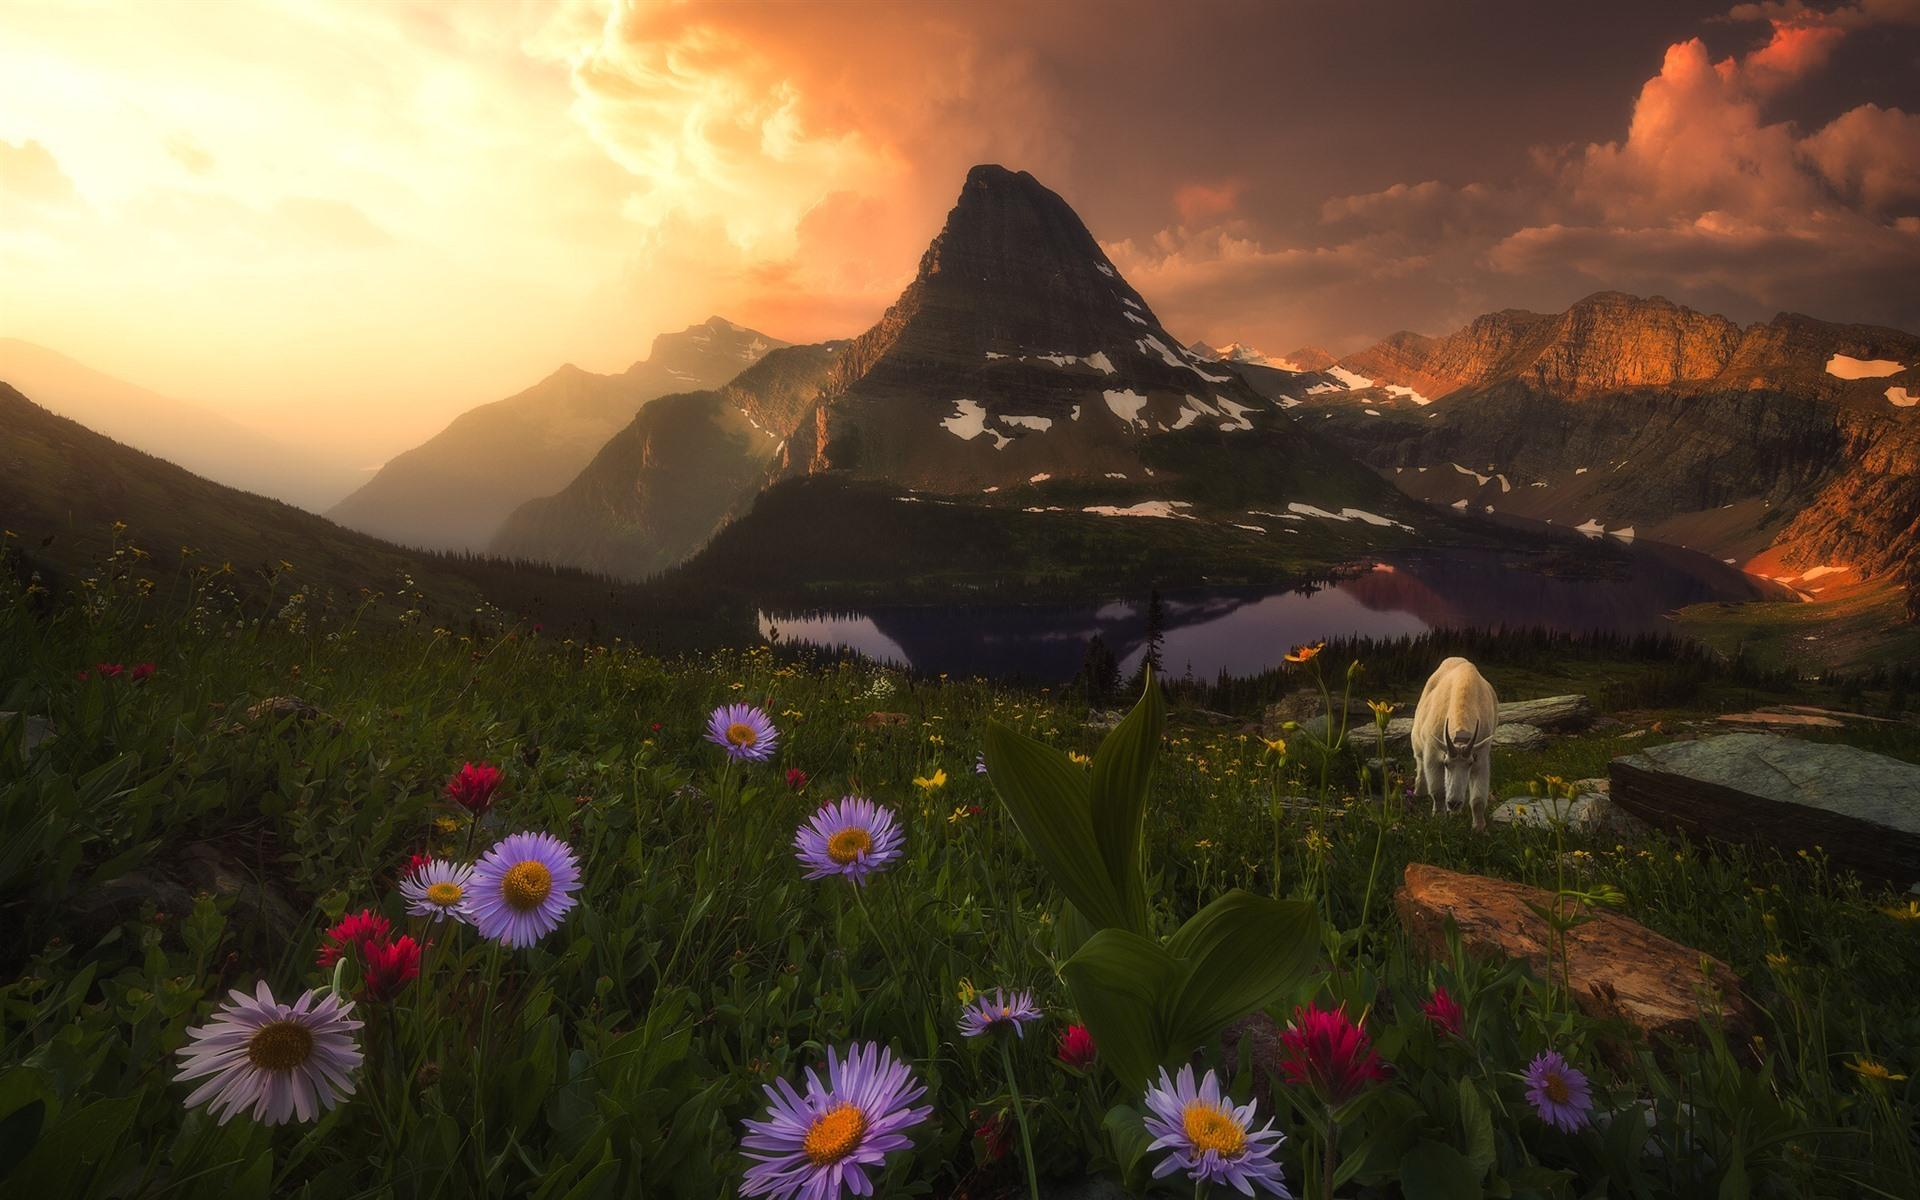 Wildflowers At Sunrise Wallpapers Wallpaper Cave